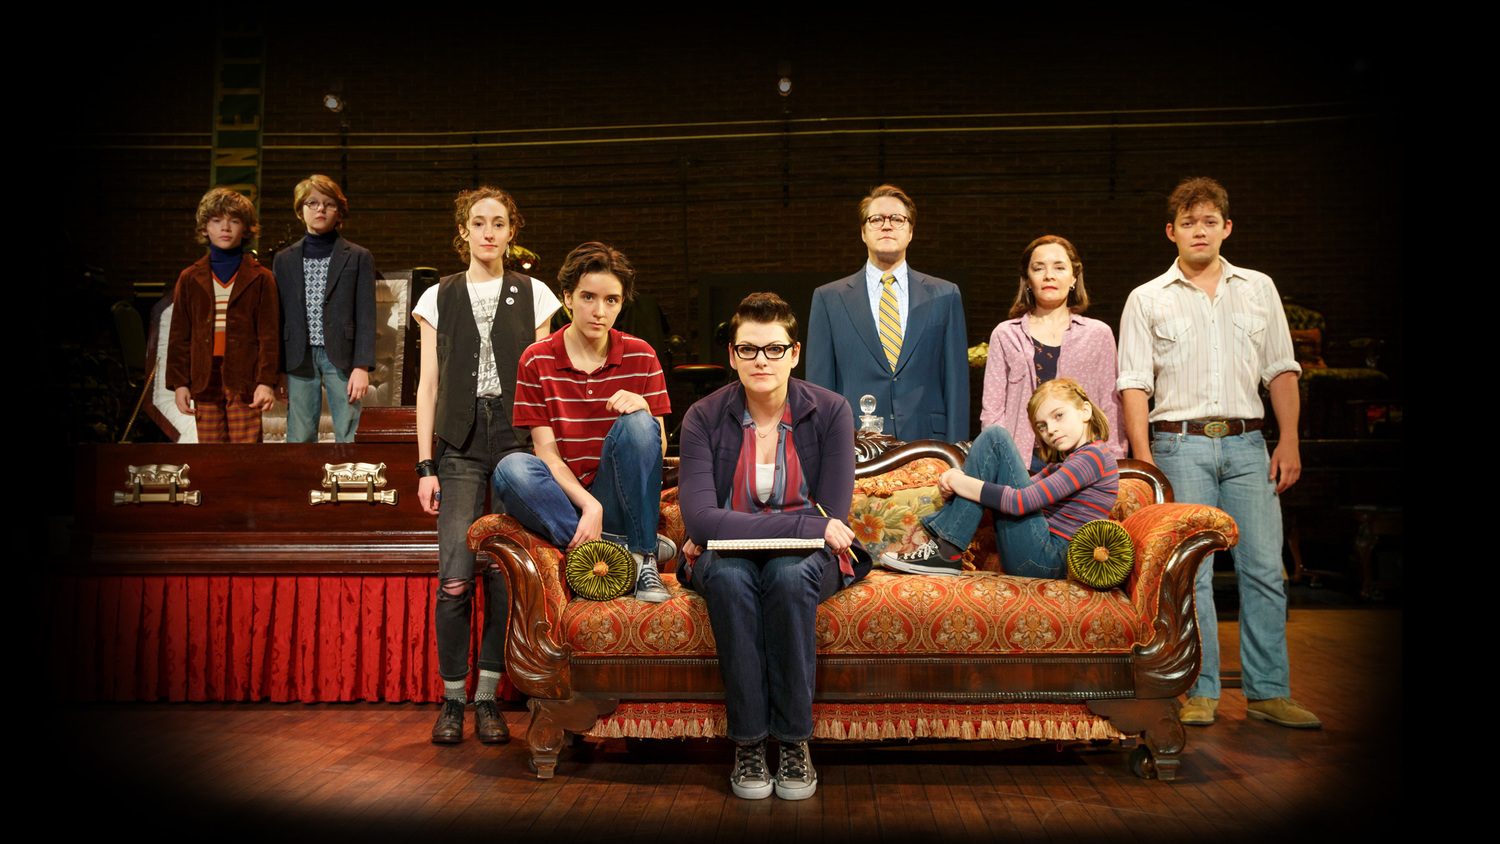 Bww Review Fun Home At Straz Center For The Performing Arts-6858